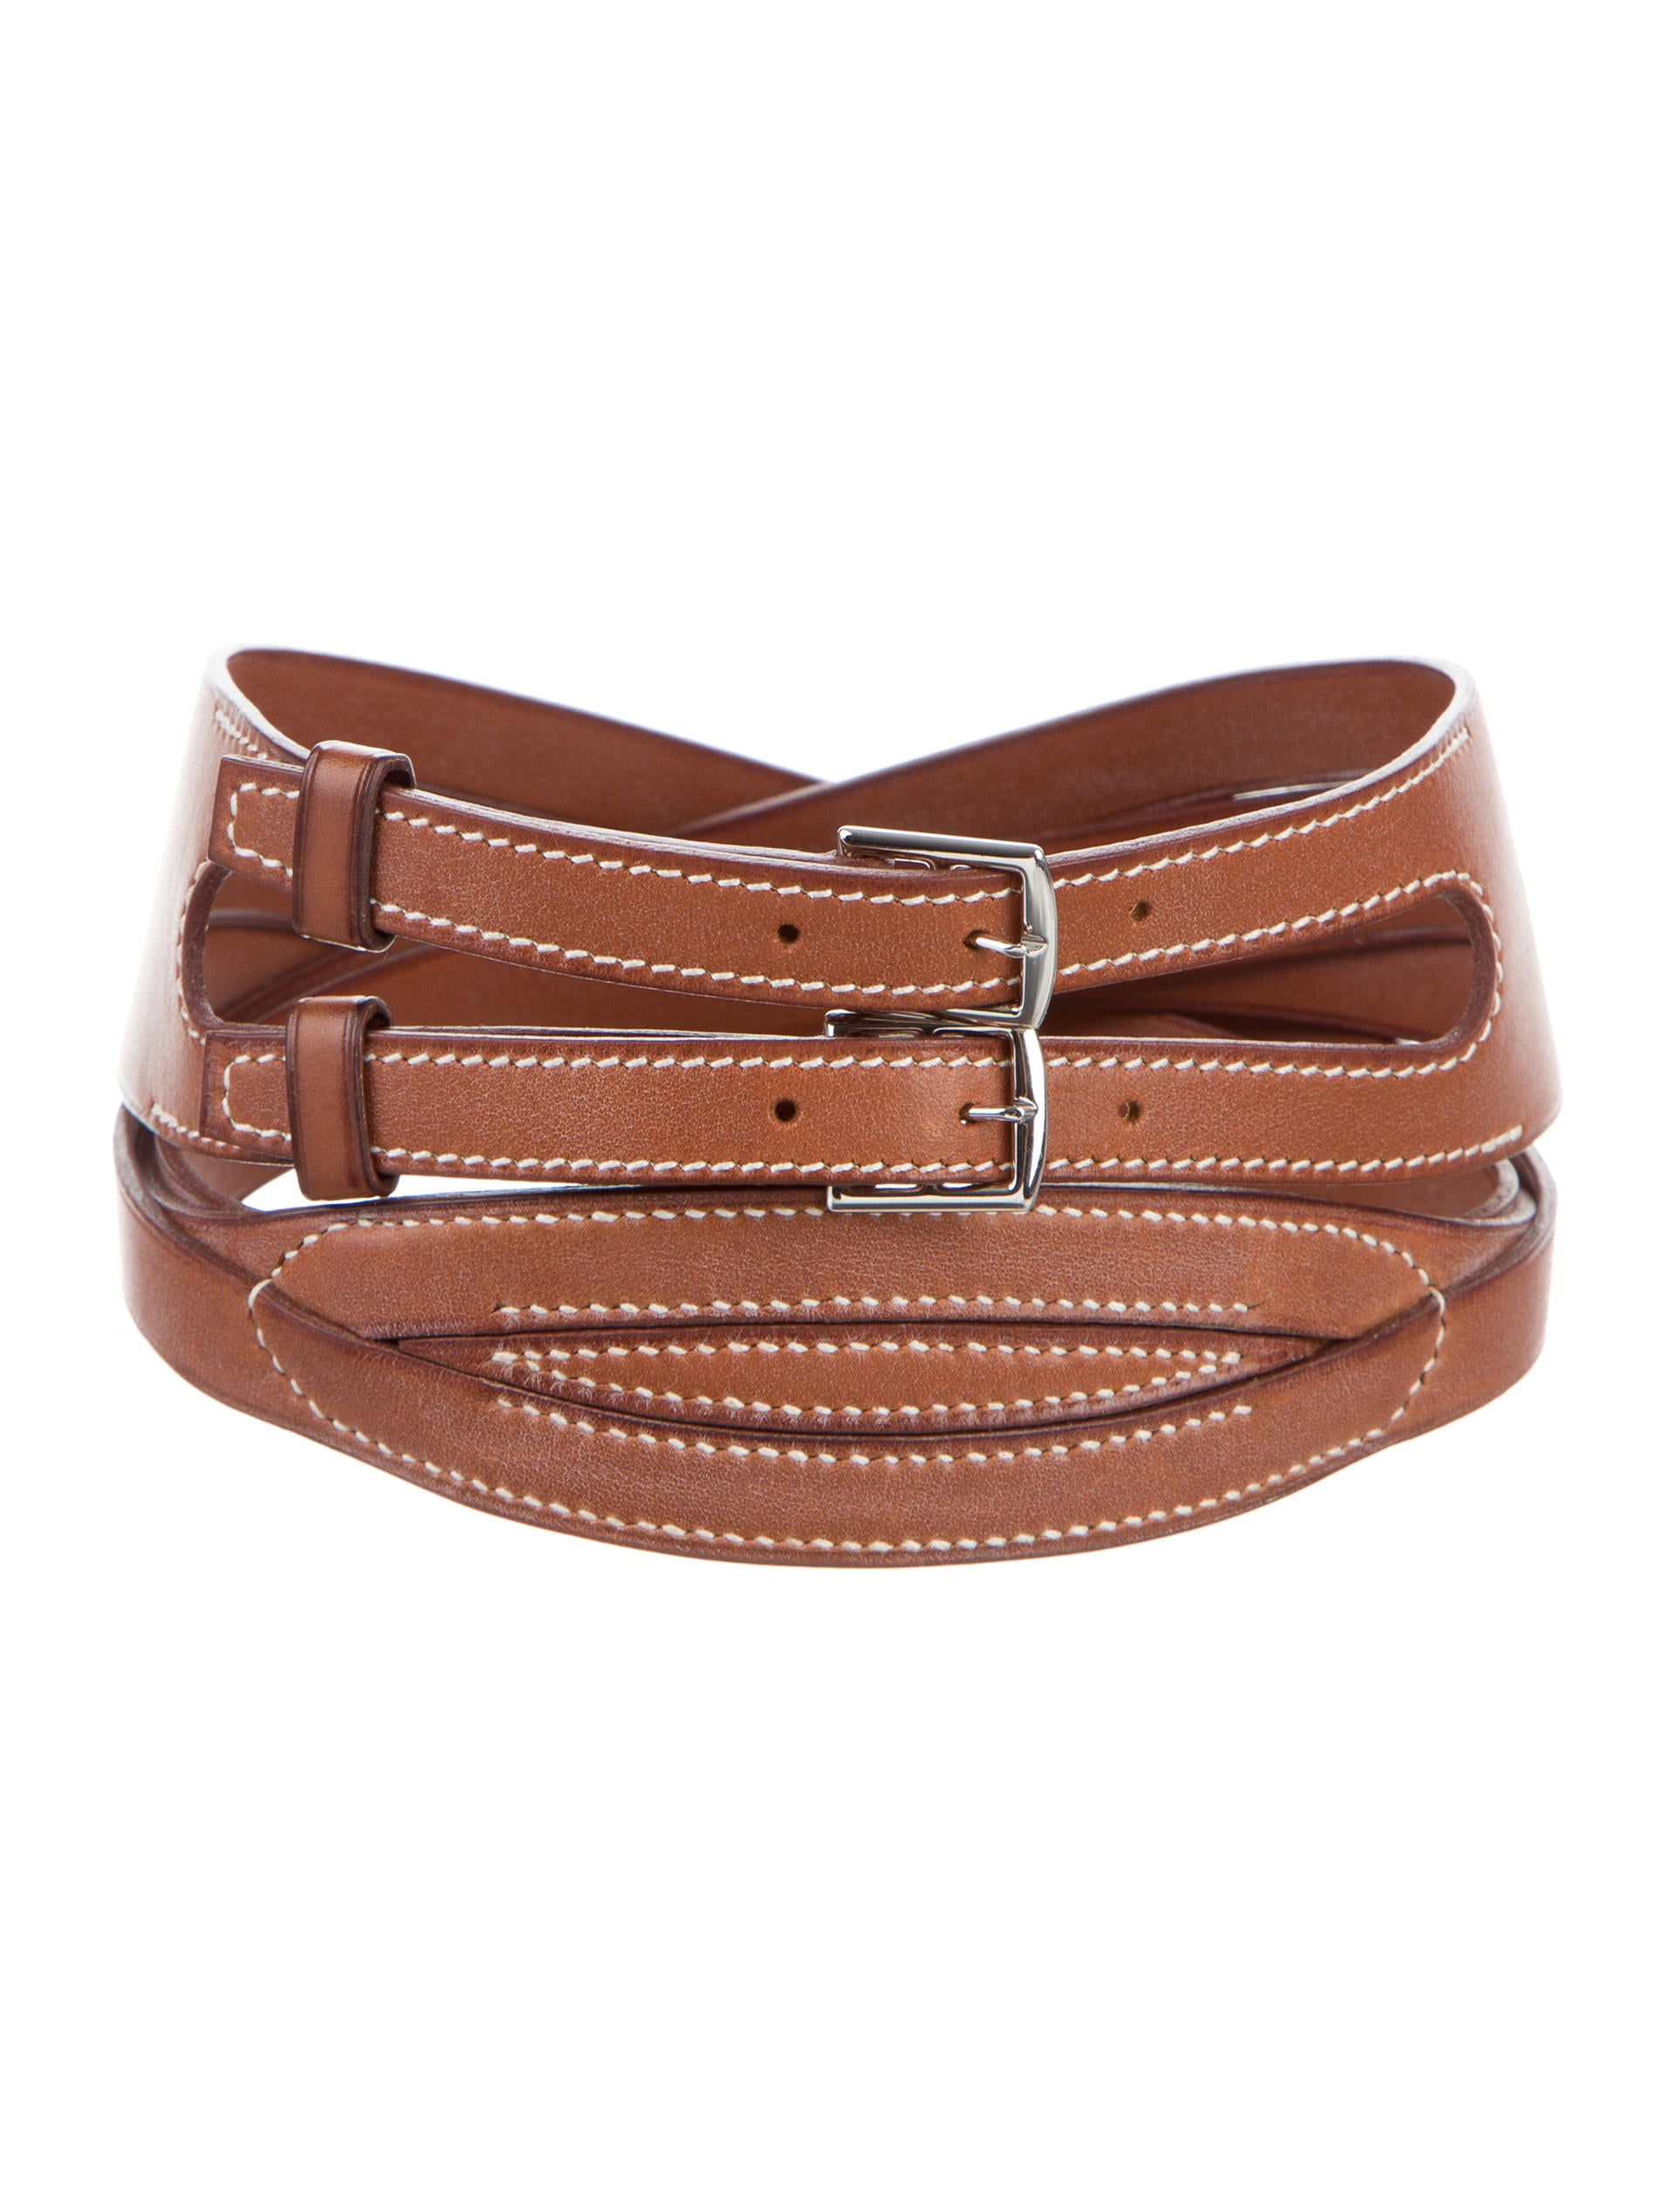 Herm 232 S Barenia Woven Leather Belt Accessories Her99735